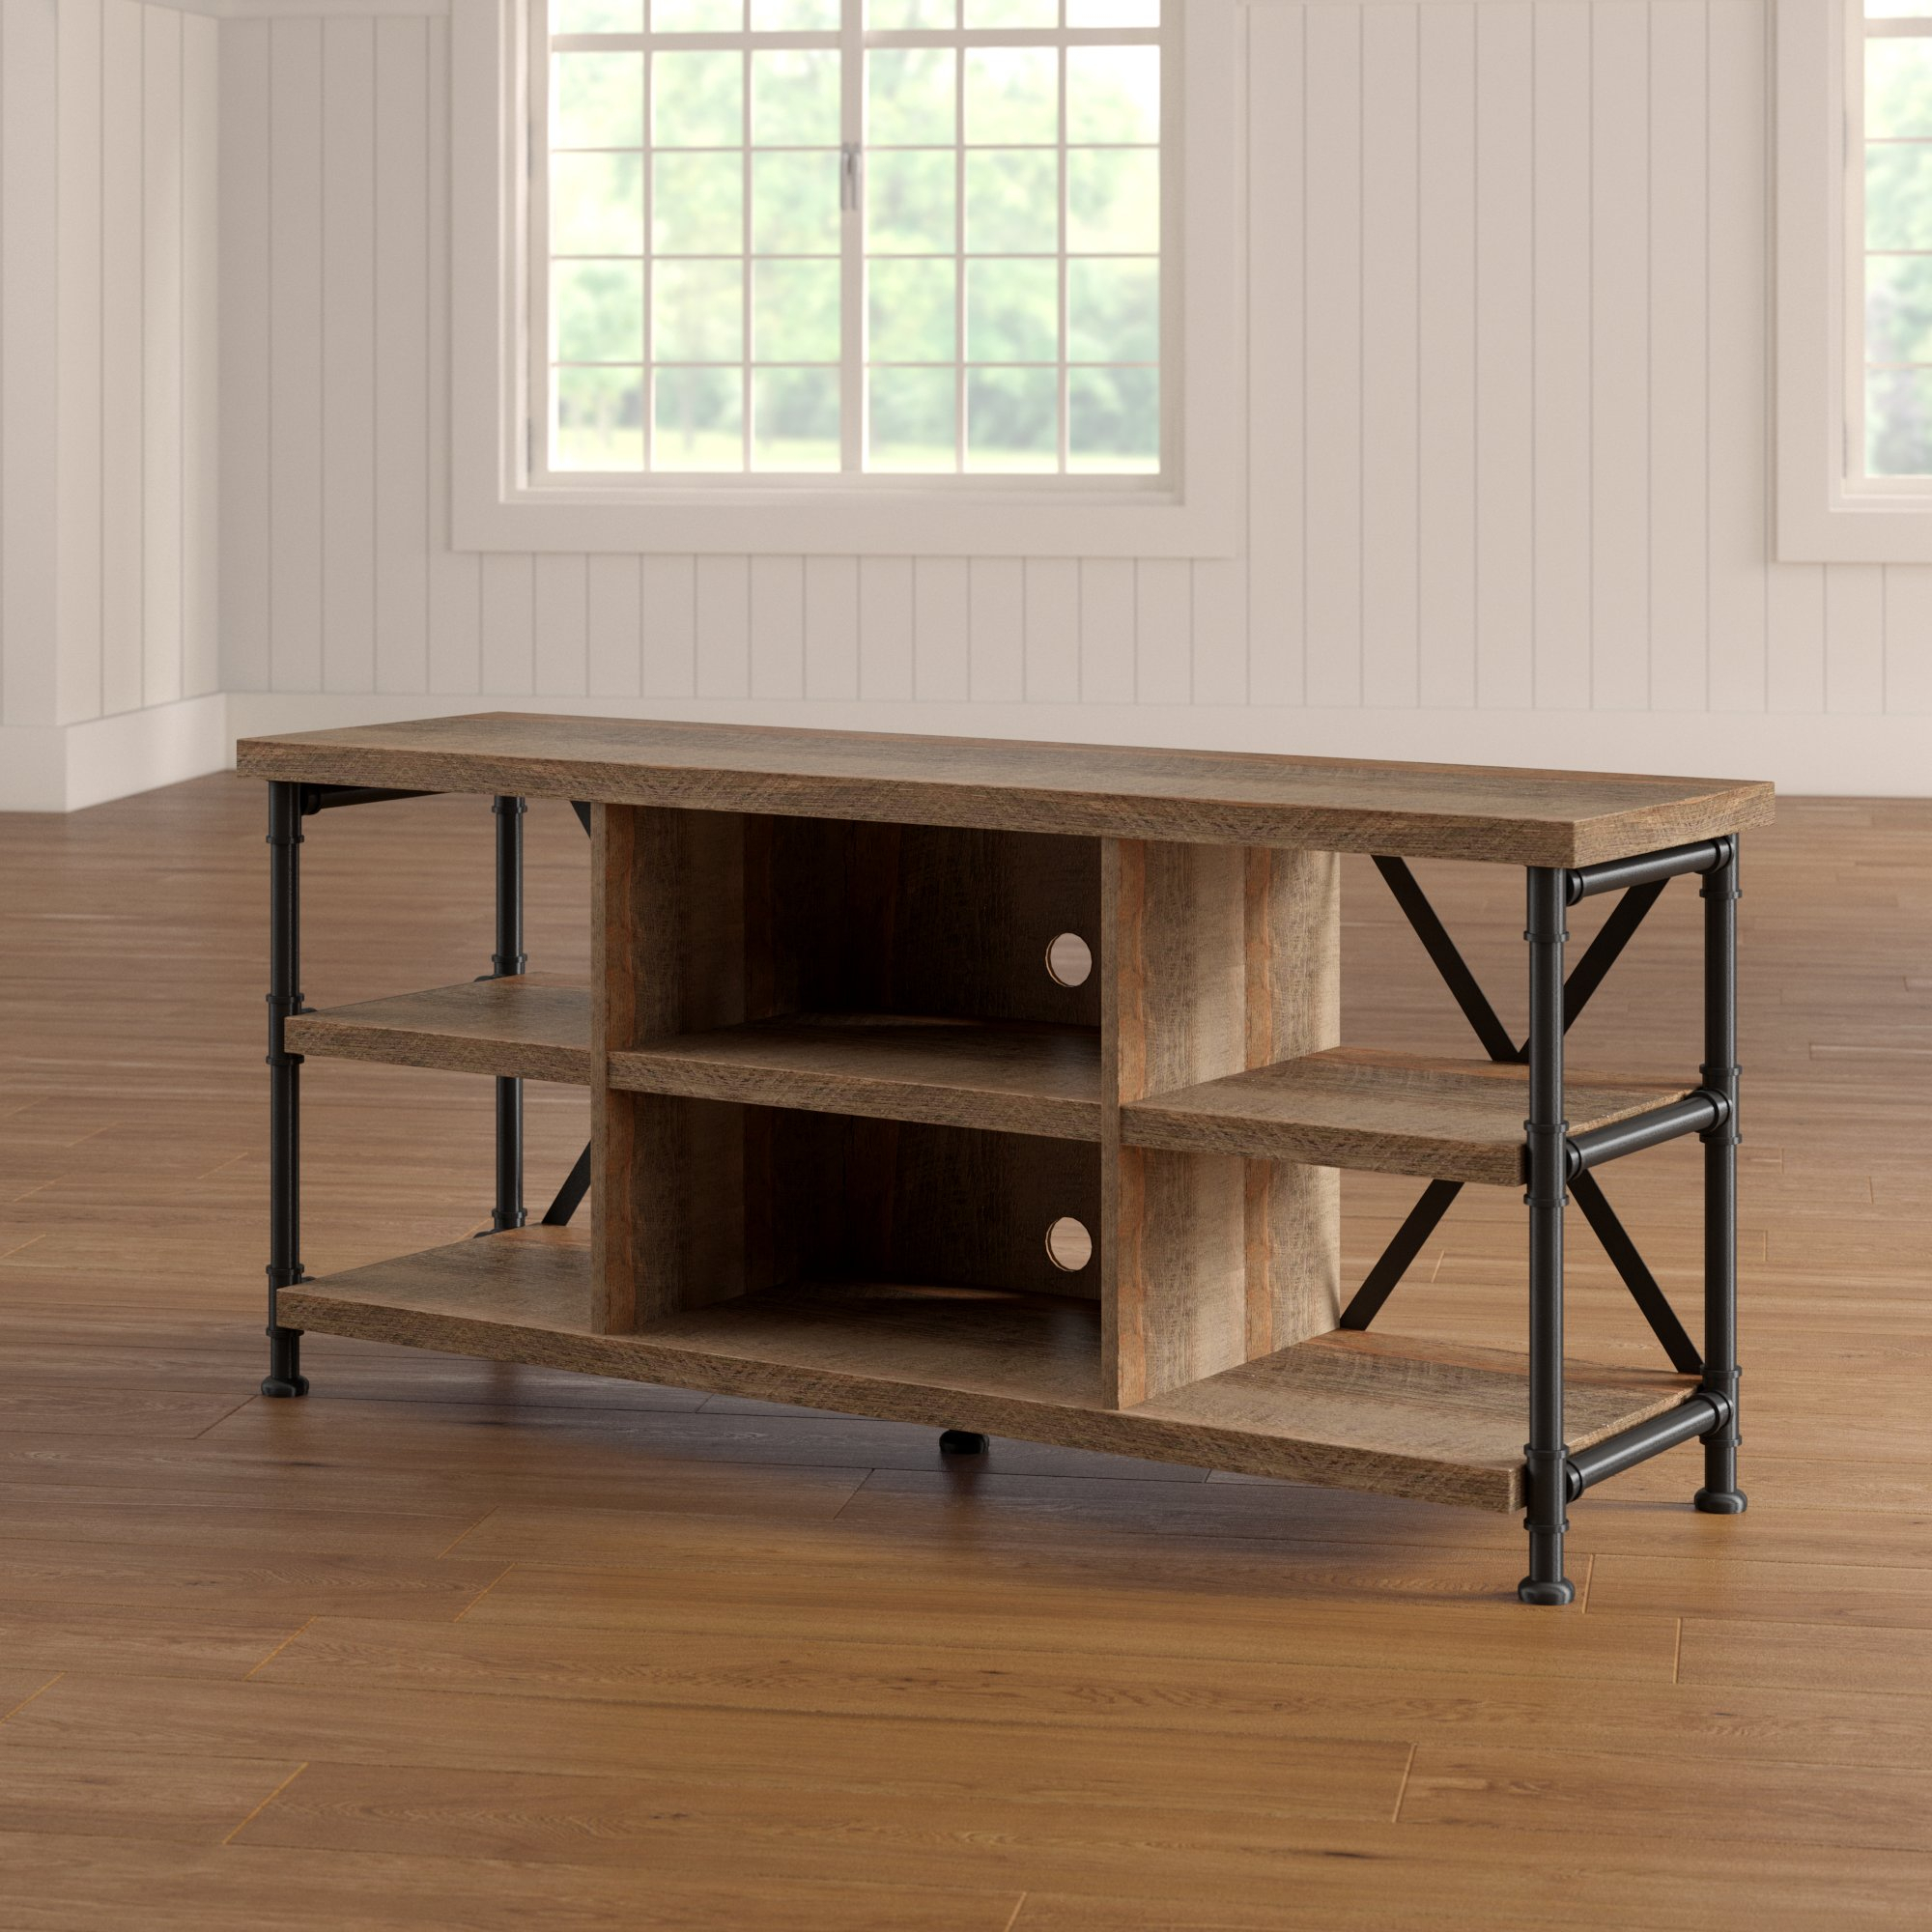 Industrial Tv Stands You'll Love | Wayfair With Regard To Gunmetal Perforated Brass Media Console Tables (View 20 of 30)